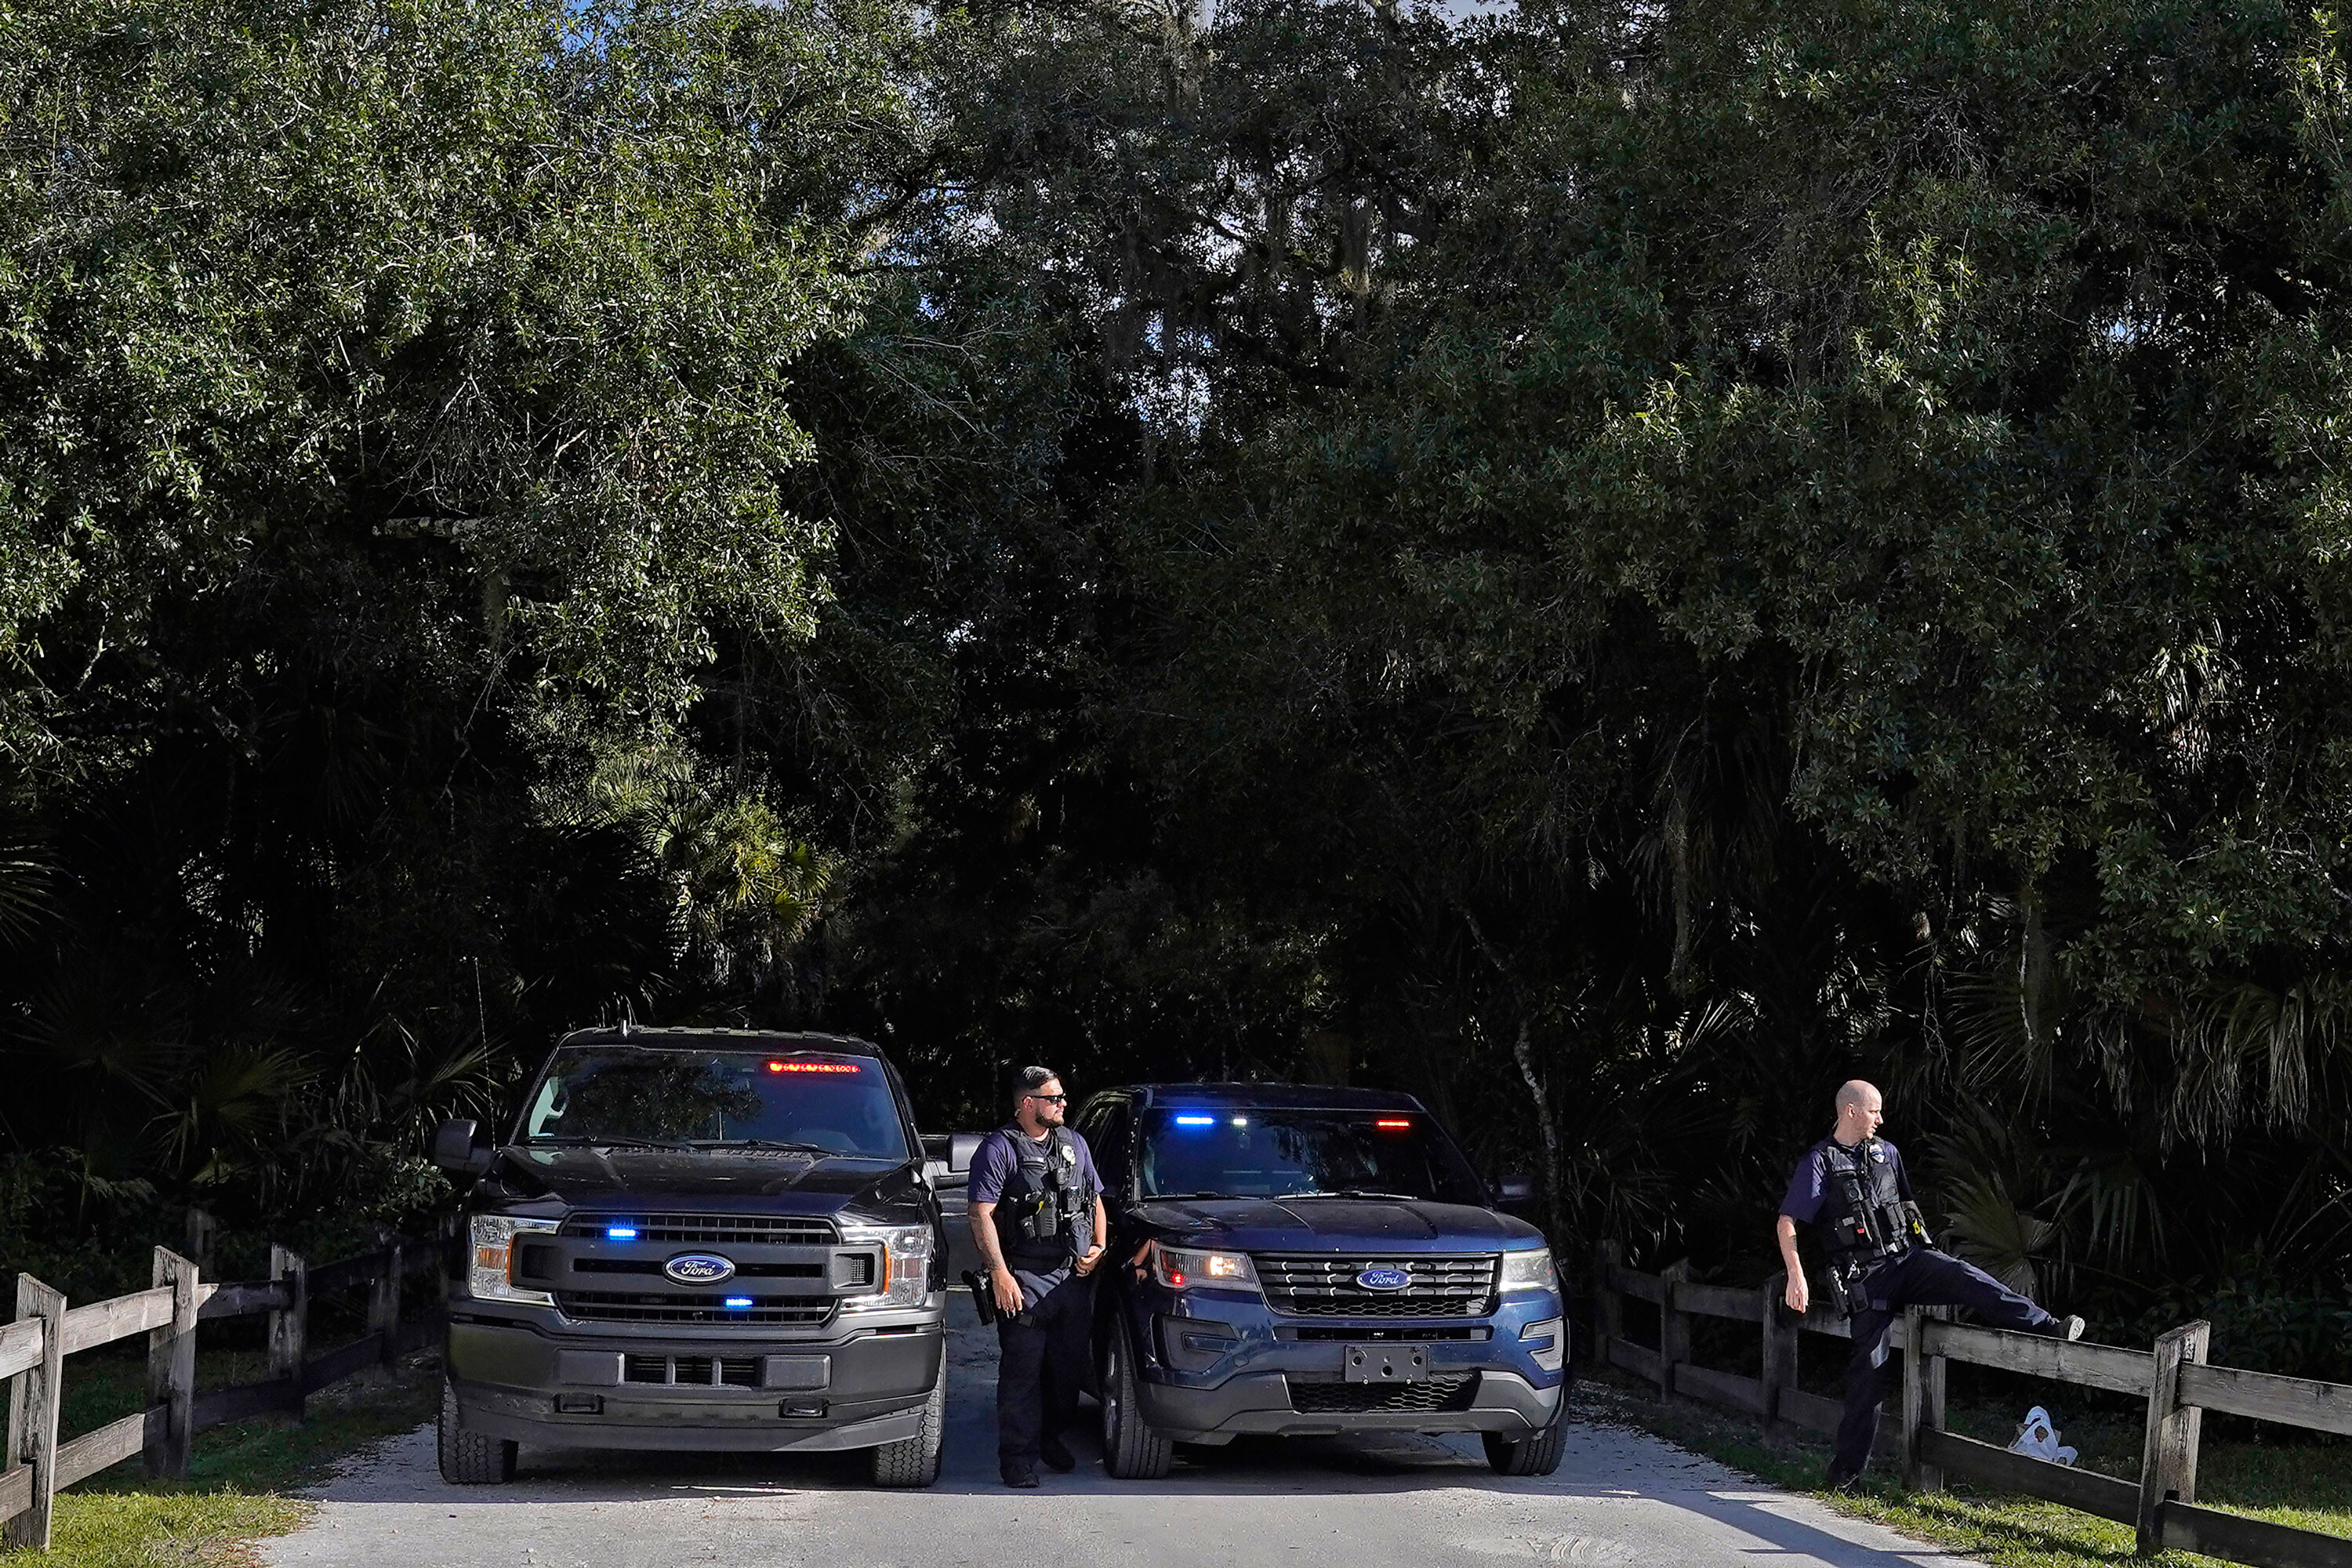 Strong probability that suspected remains found in a Florida park are Brian Laundrie's, family attorney says